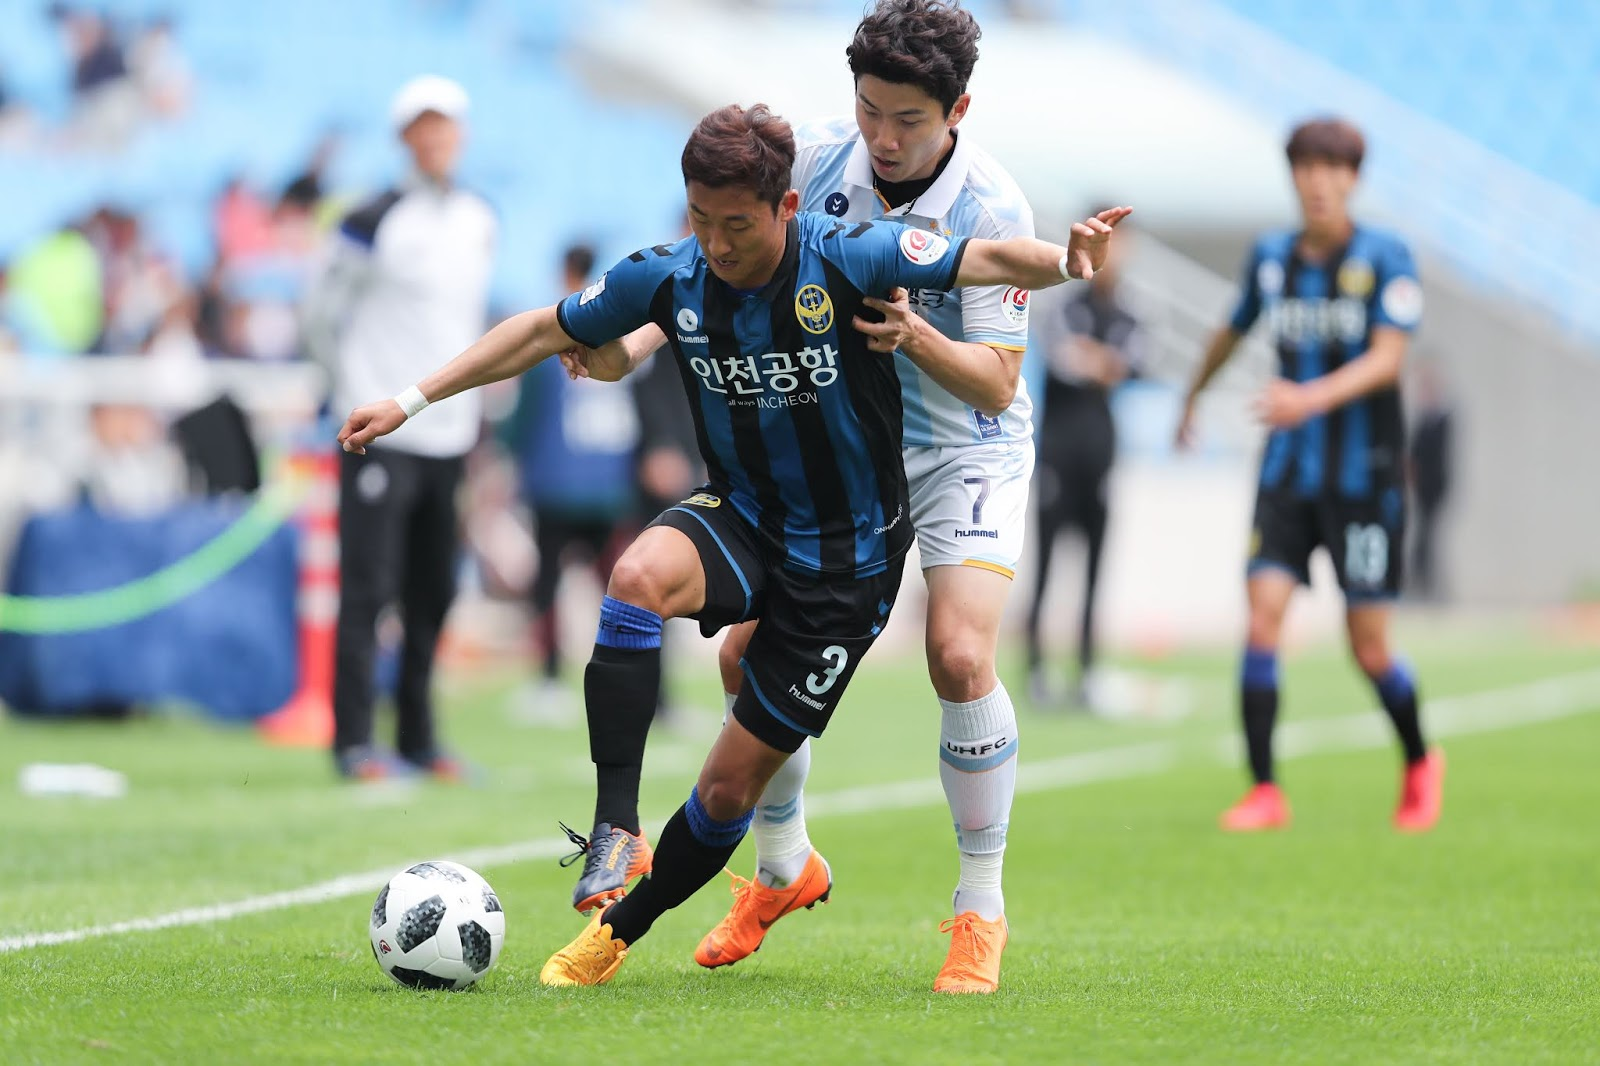 Preview: Incheon United vs Ulsan Hyundai K League 1